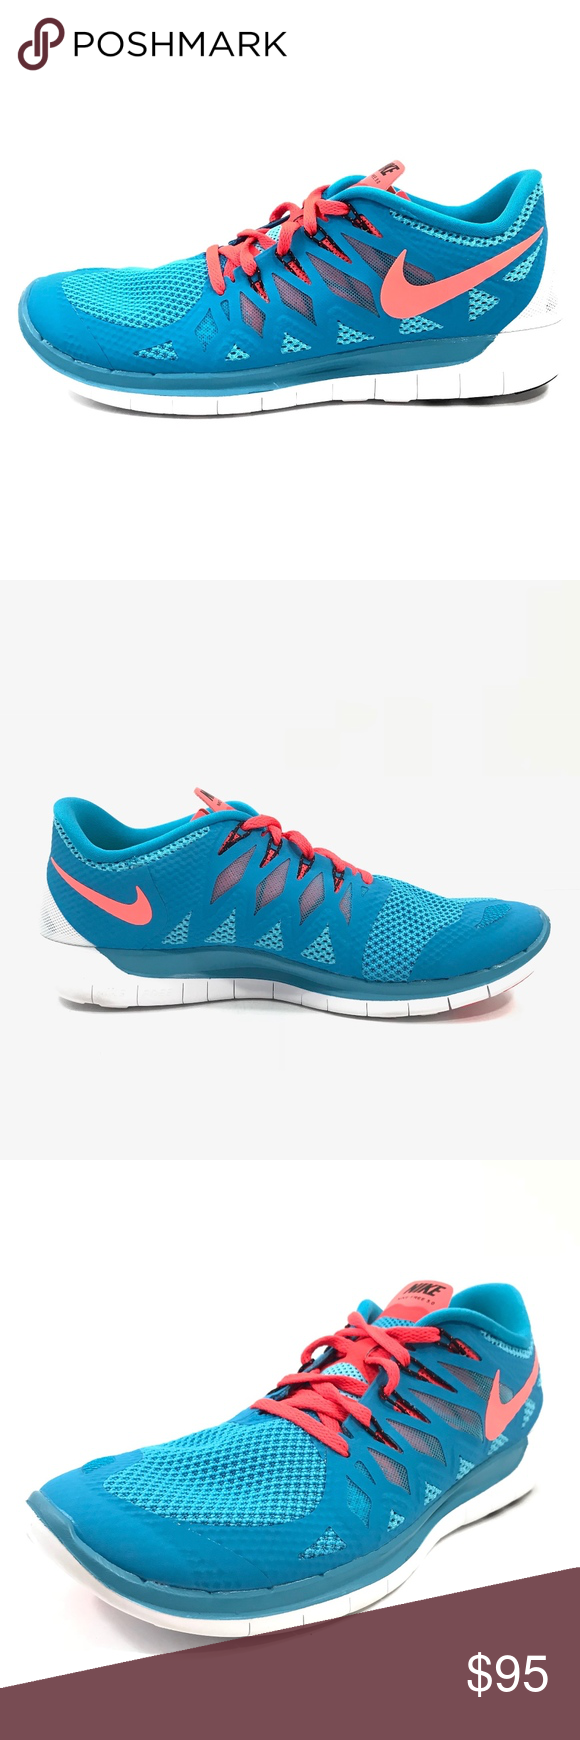 82947980b59d6 Trainers · Shoes Sneakers · Nike Mens Free 5.0 Running Training Shoes Nike  Mens Free 5.0 Running Training Shoes Blue Crimson